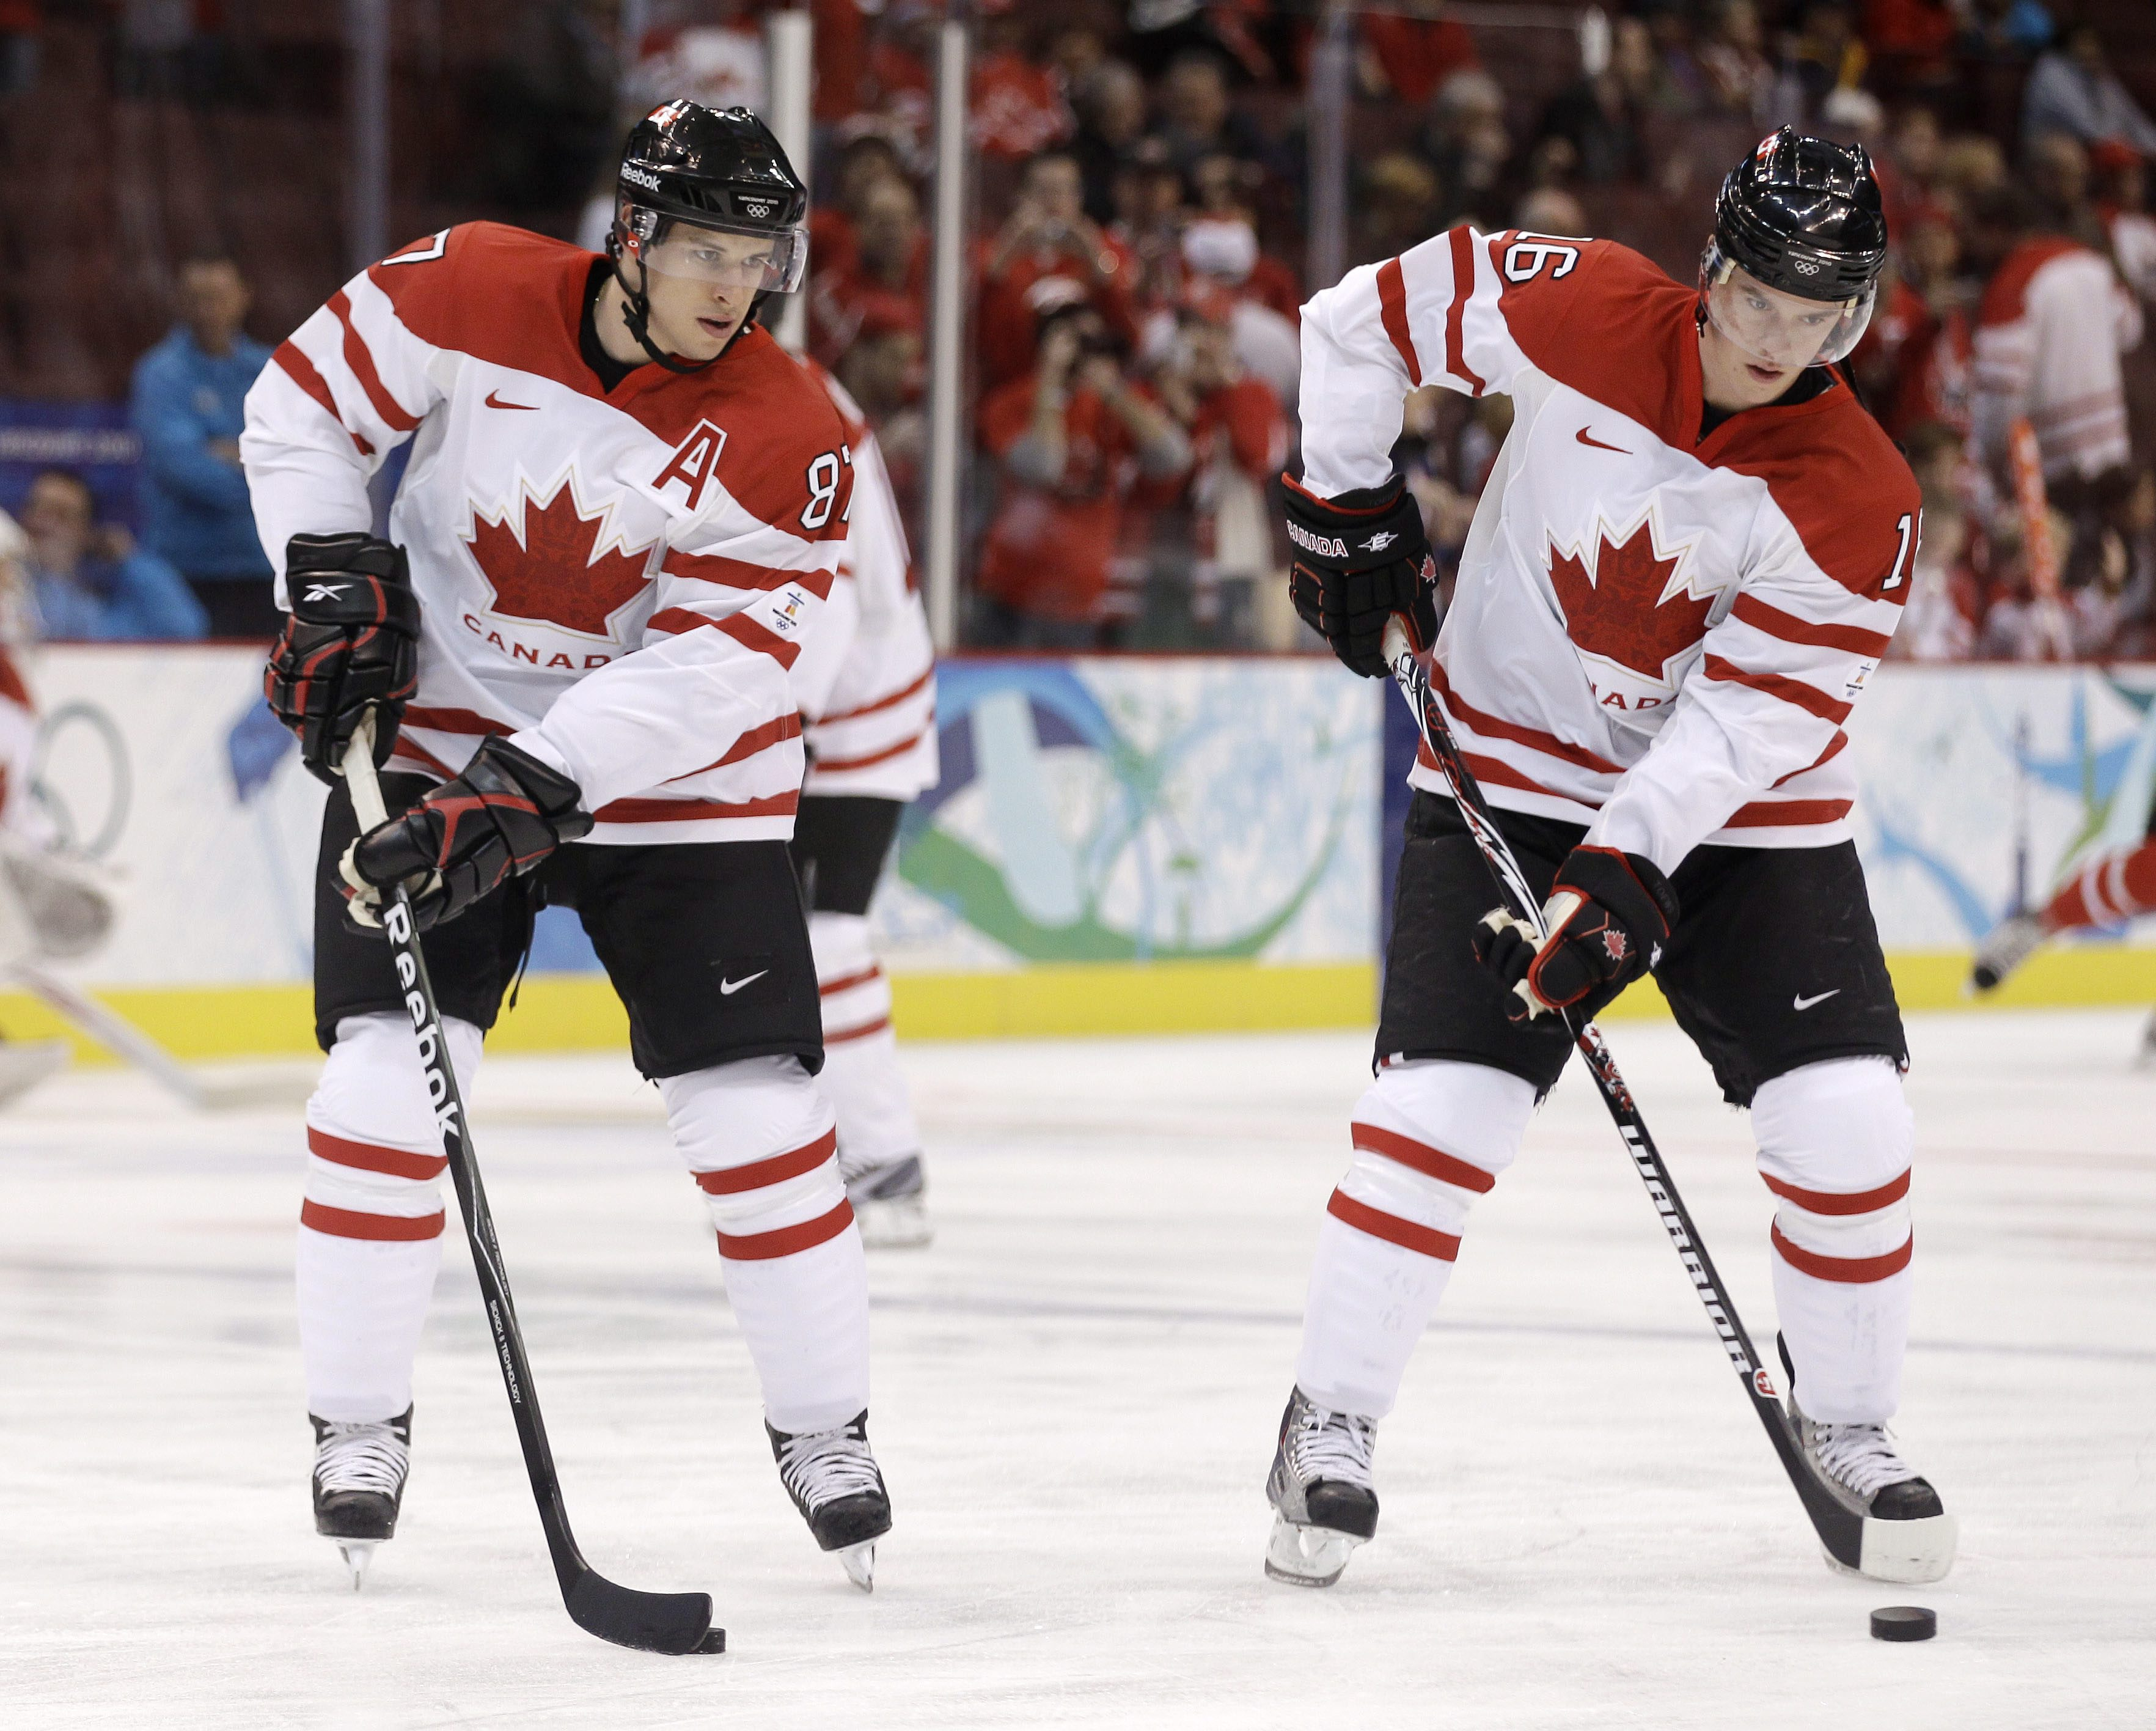 Sidney Crosby and Jonathan Toews warming up on the ice